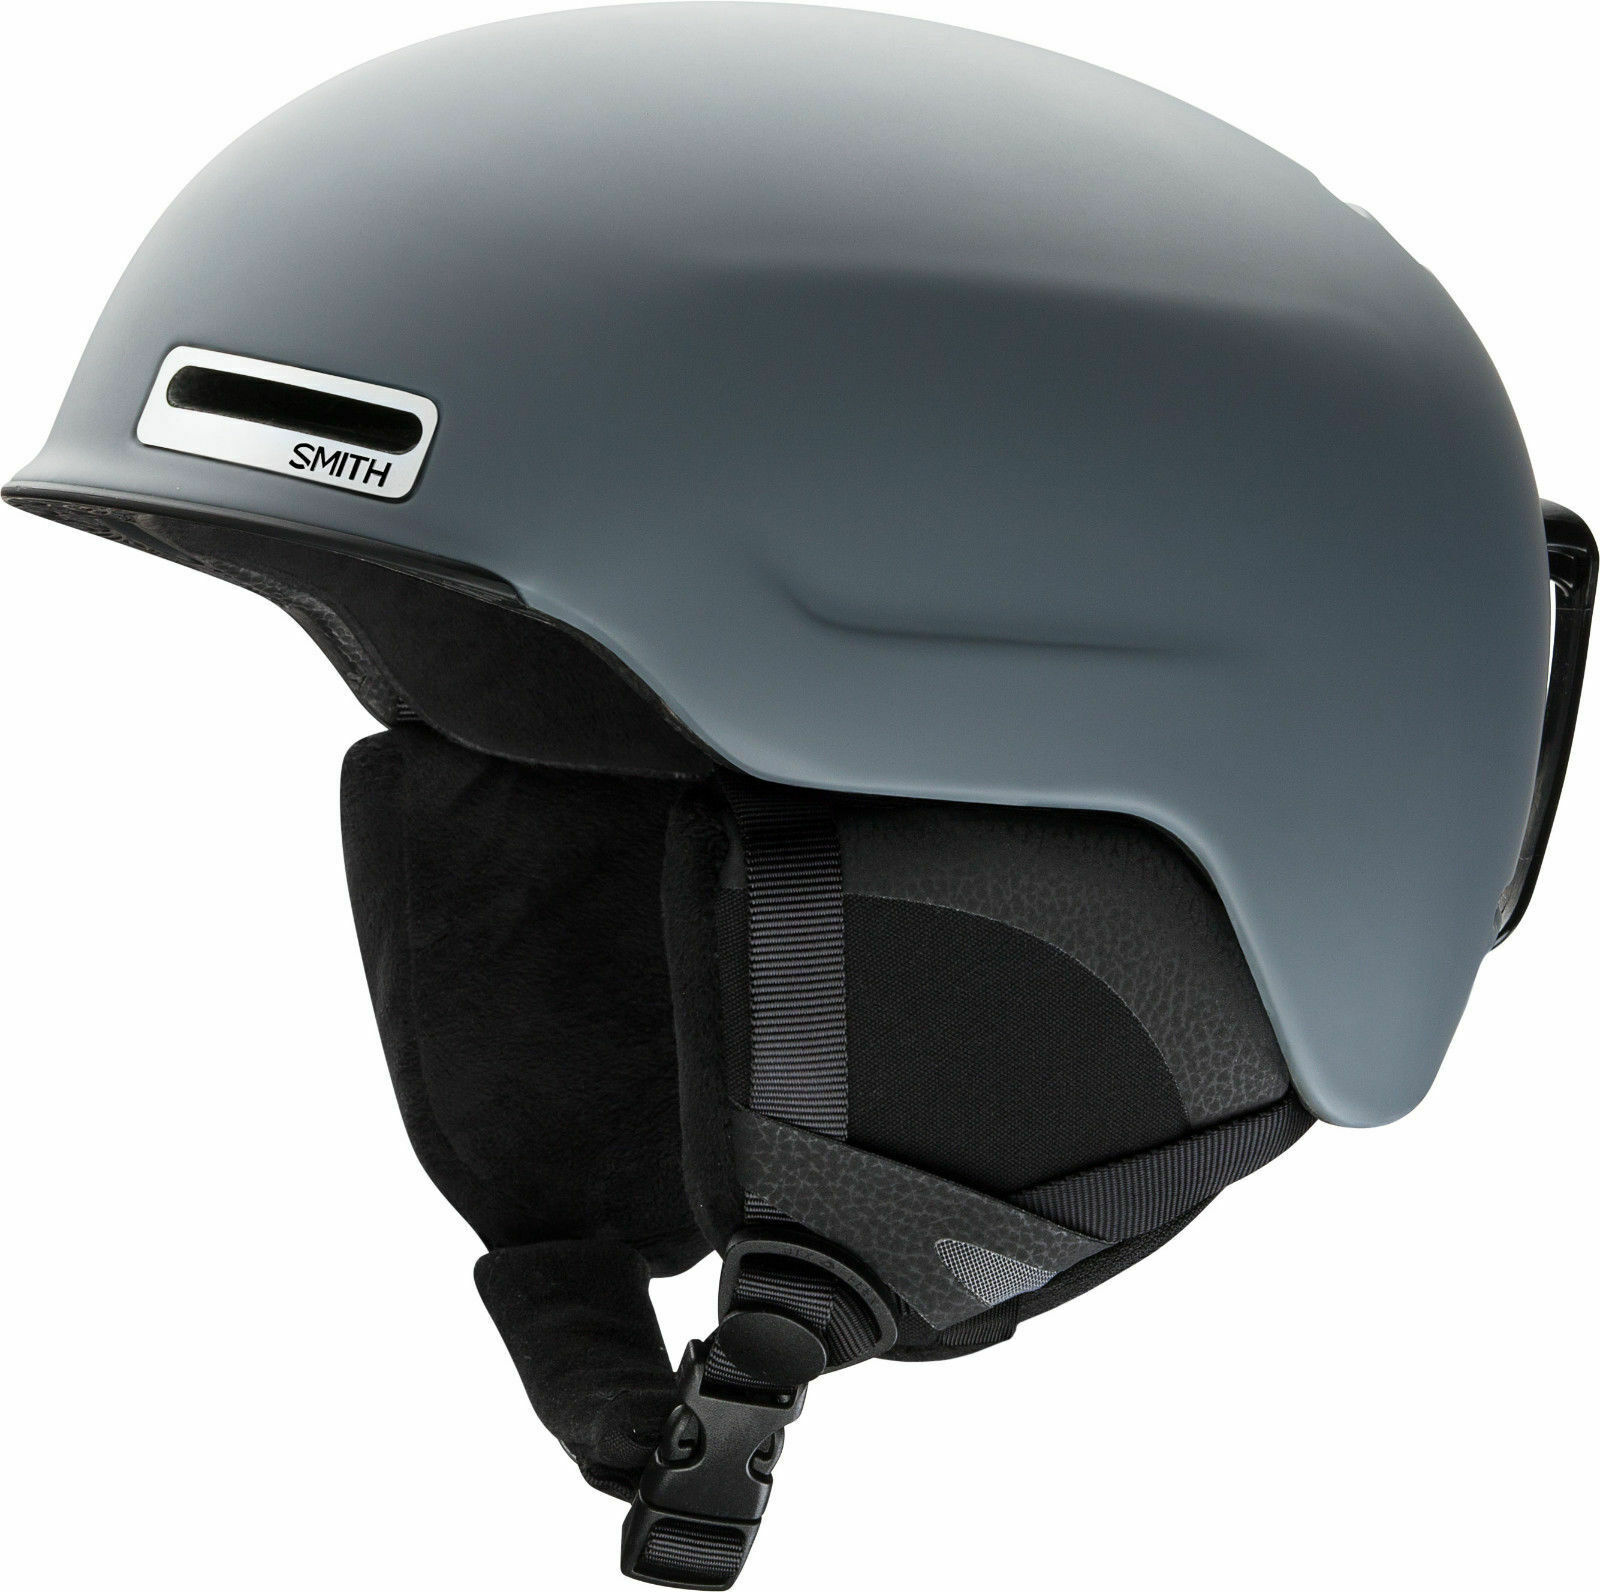 Smith Optics Maze Snow Sports  Helmet (Matte Charcoal) Size Medium (55-59cm)  with 60% off discount